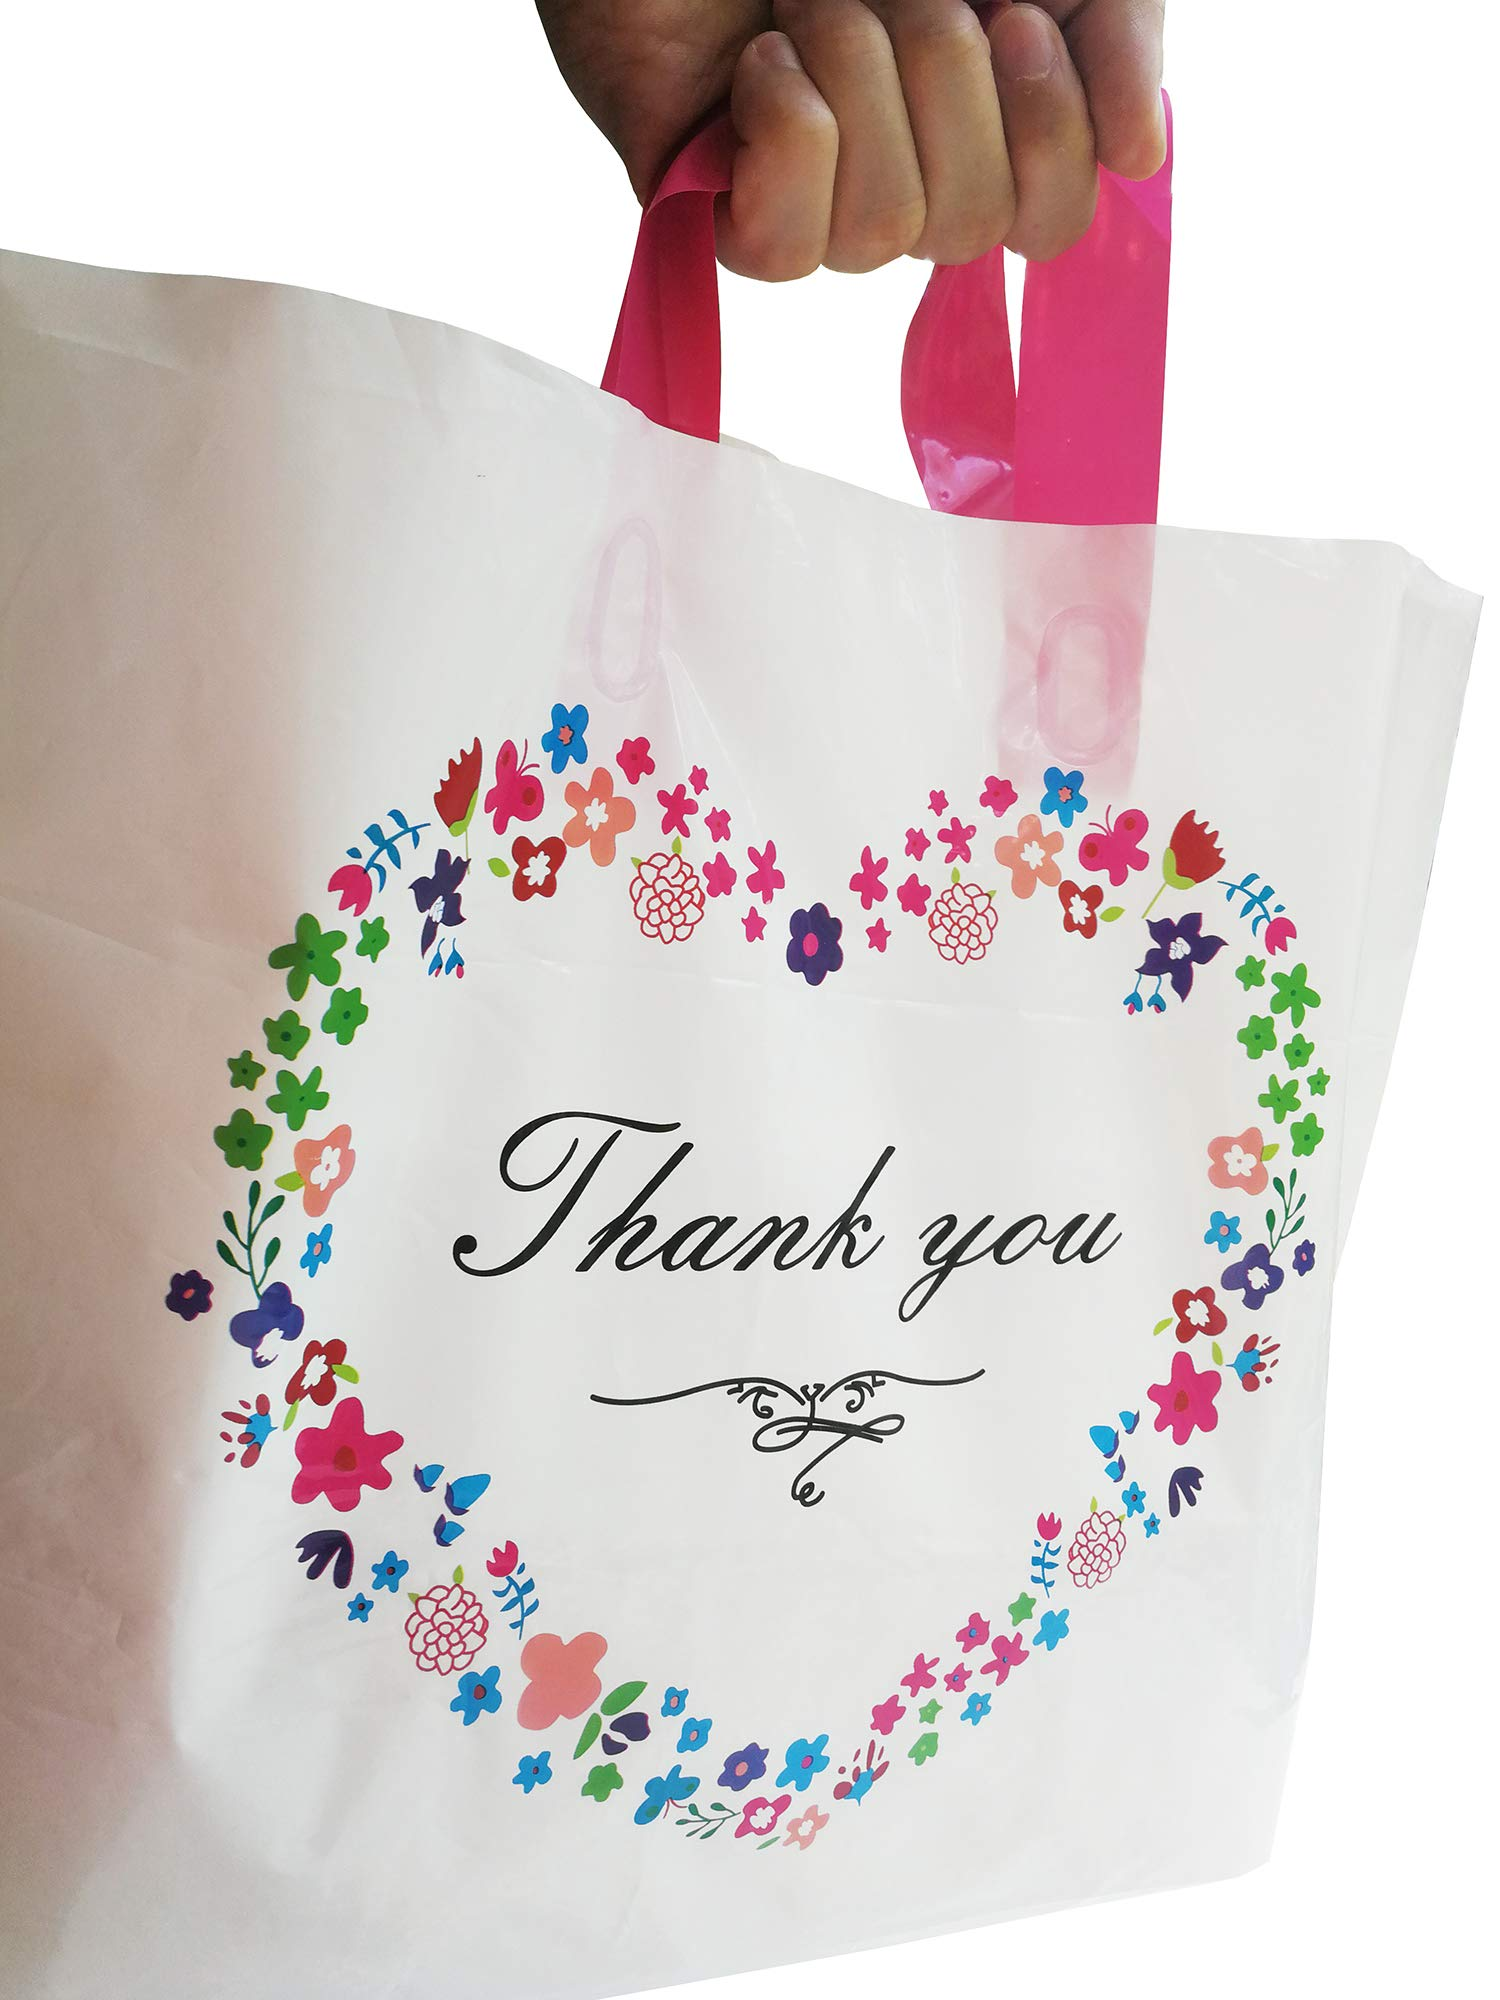 50 Pcs Thank You Merchandise Bags,Plastic Gift Bags, Retail Clothing Boutique Grocery Shopping Bags,Size:14.6''x13.6''x3.1''(37x32x8CM),2.8 Mil